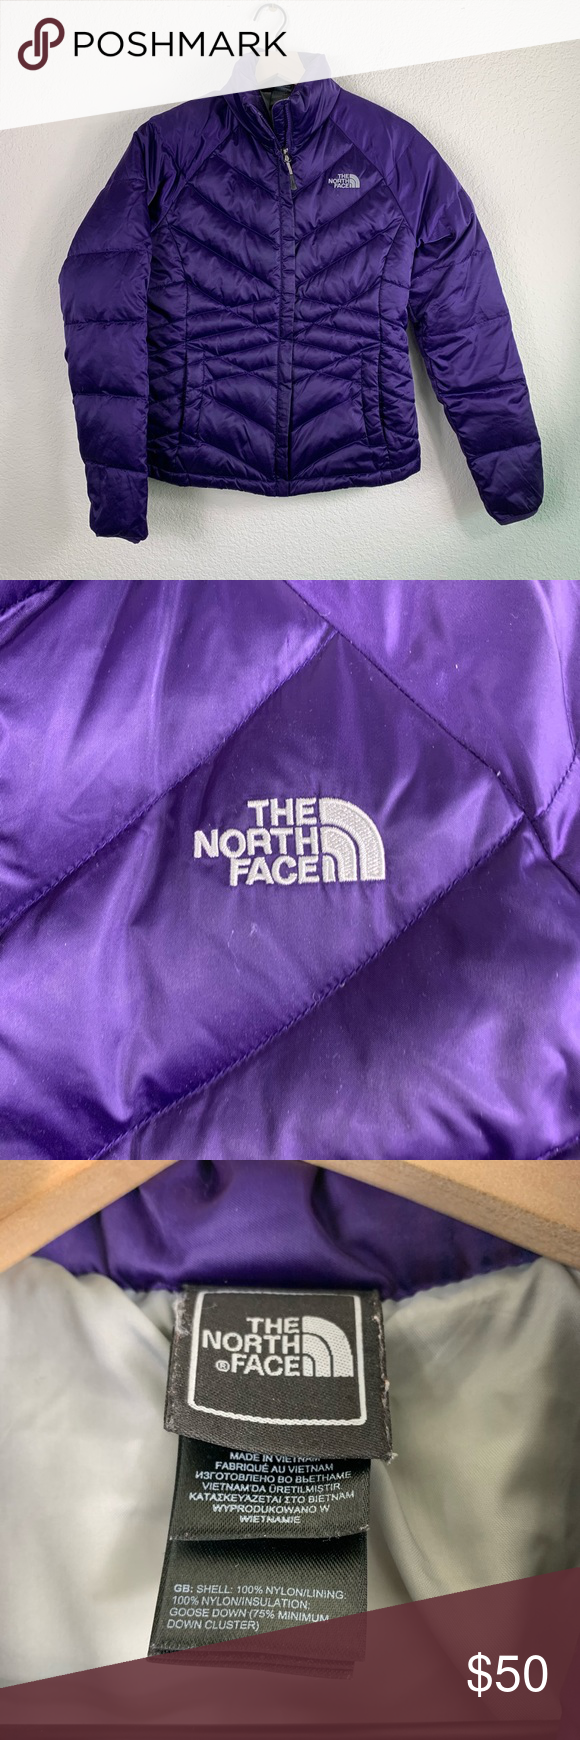 The North Face Puffer Jacket The North Face Puffer Jacket Size Small Color Purple Great Cond North Face Puffer Jacket The North Face North Face Jacket [ 1740 x 580 Pixel ]